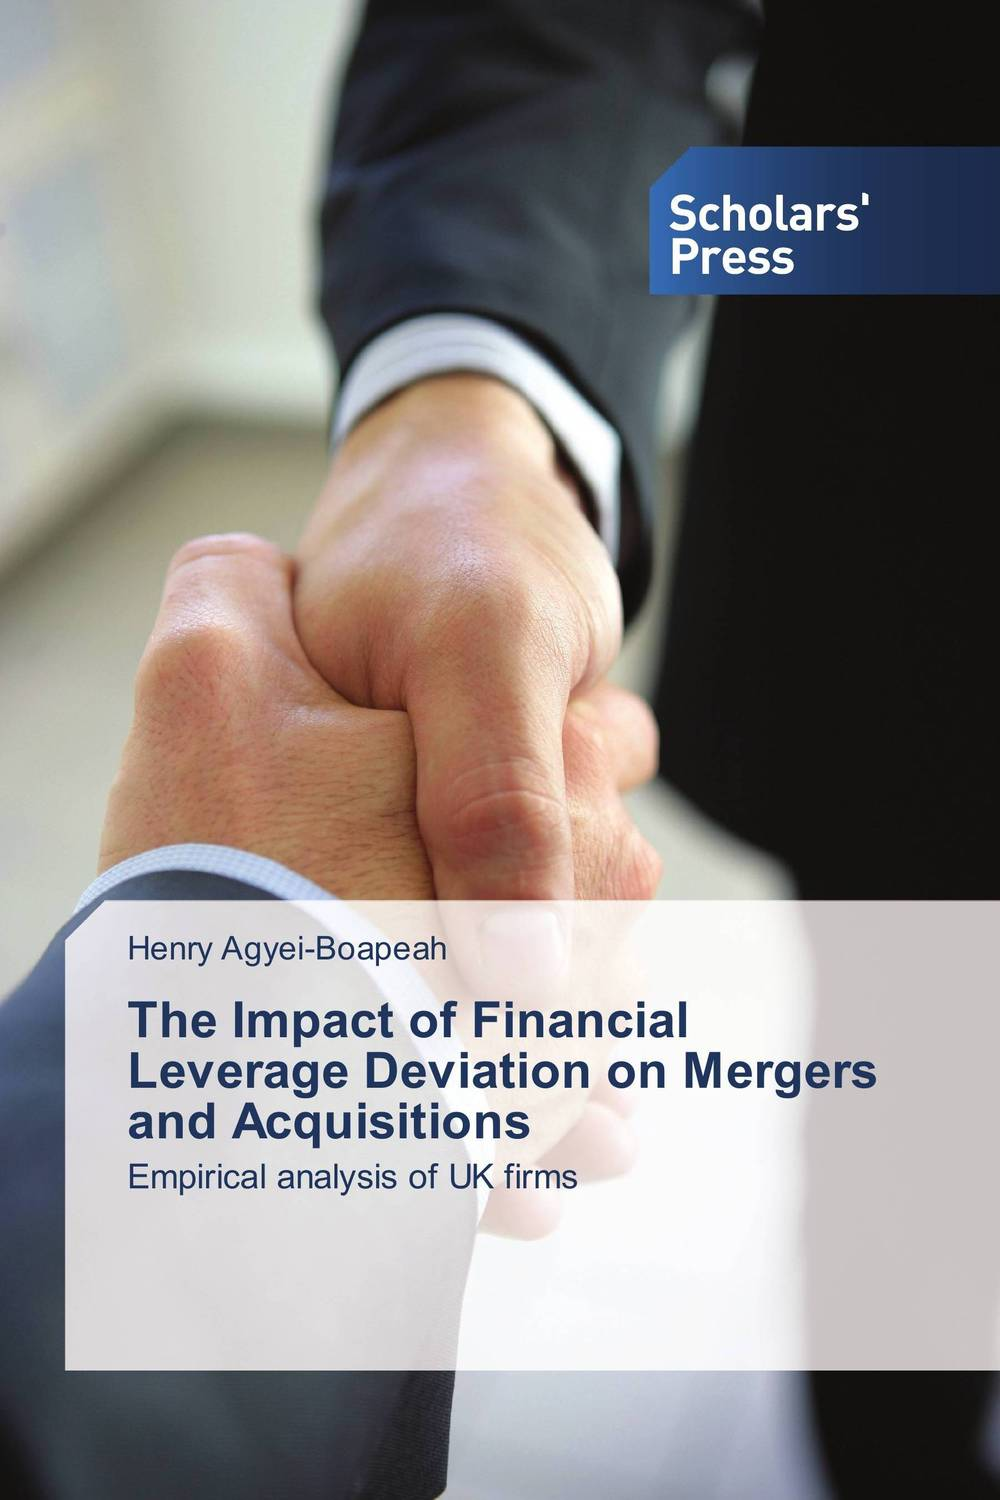 The Impact of Financial Leverage Deviation on Mergers and Acquisitions corporate governance and firm value